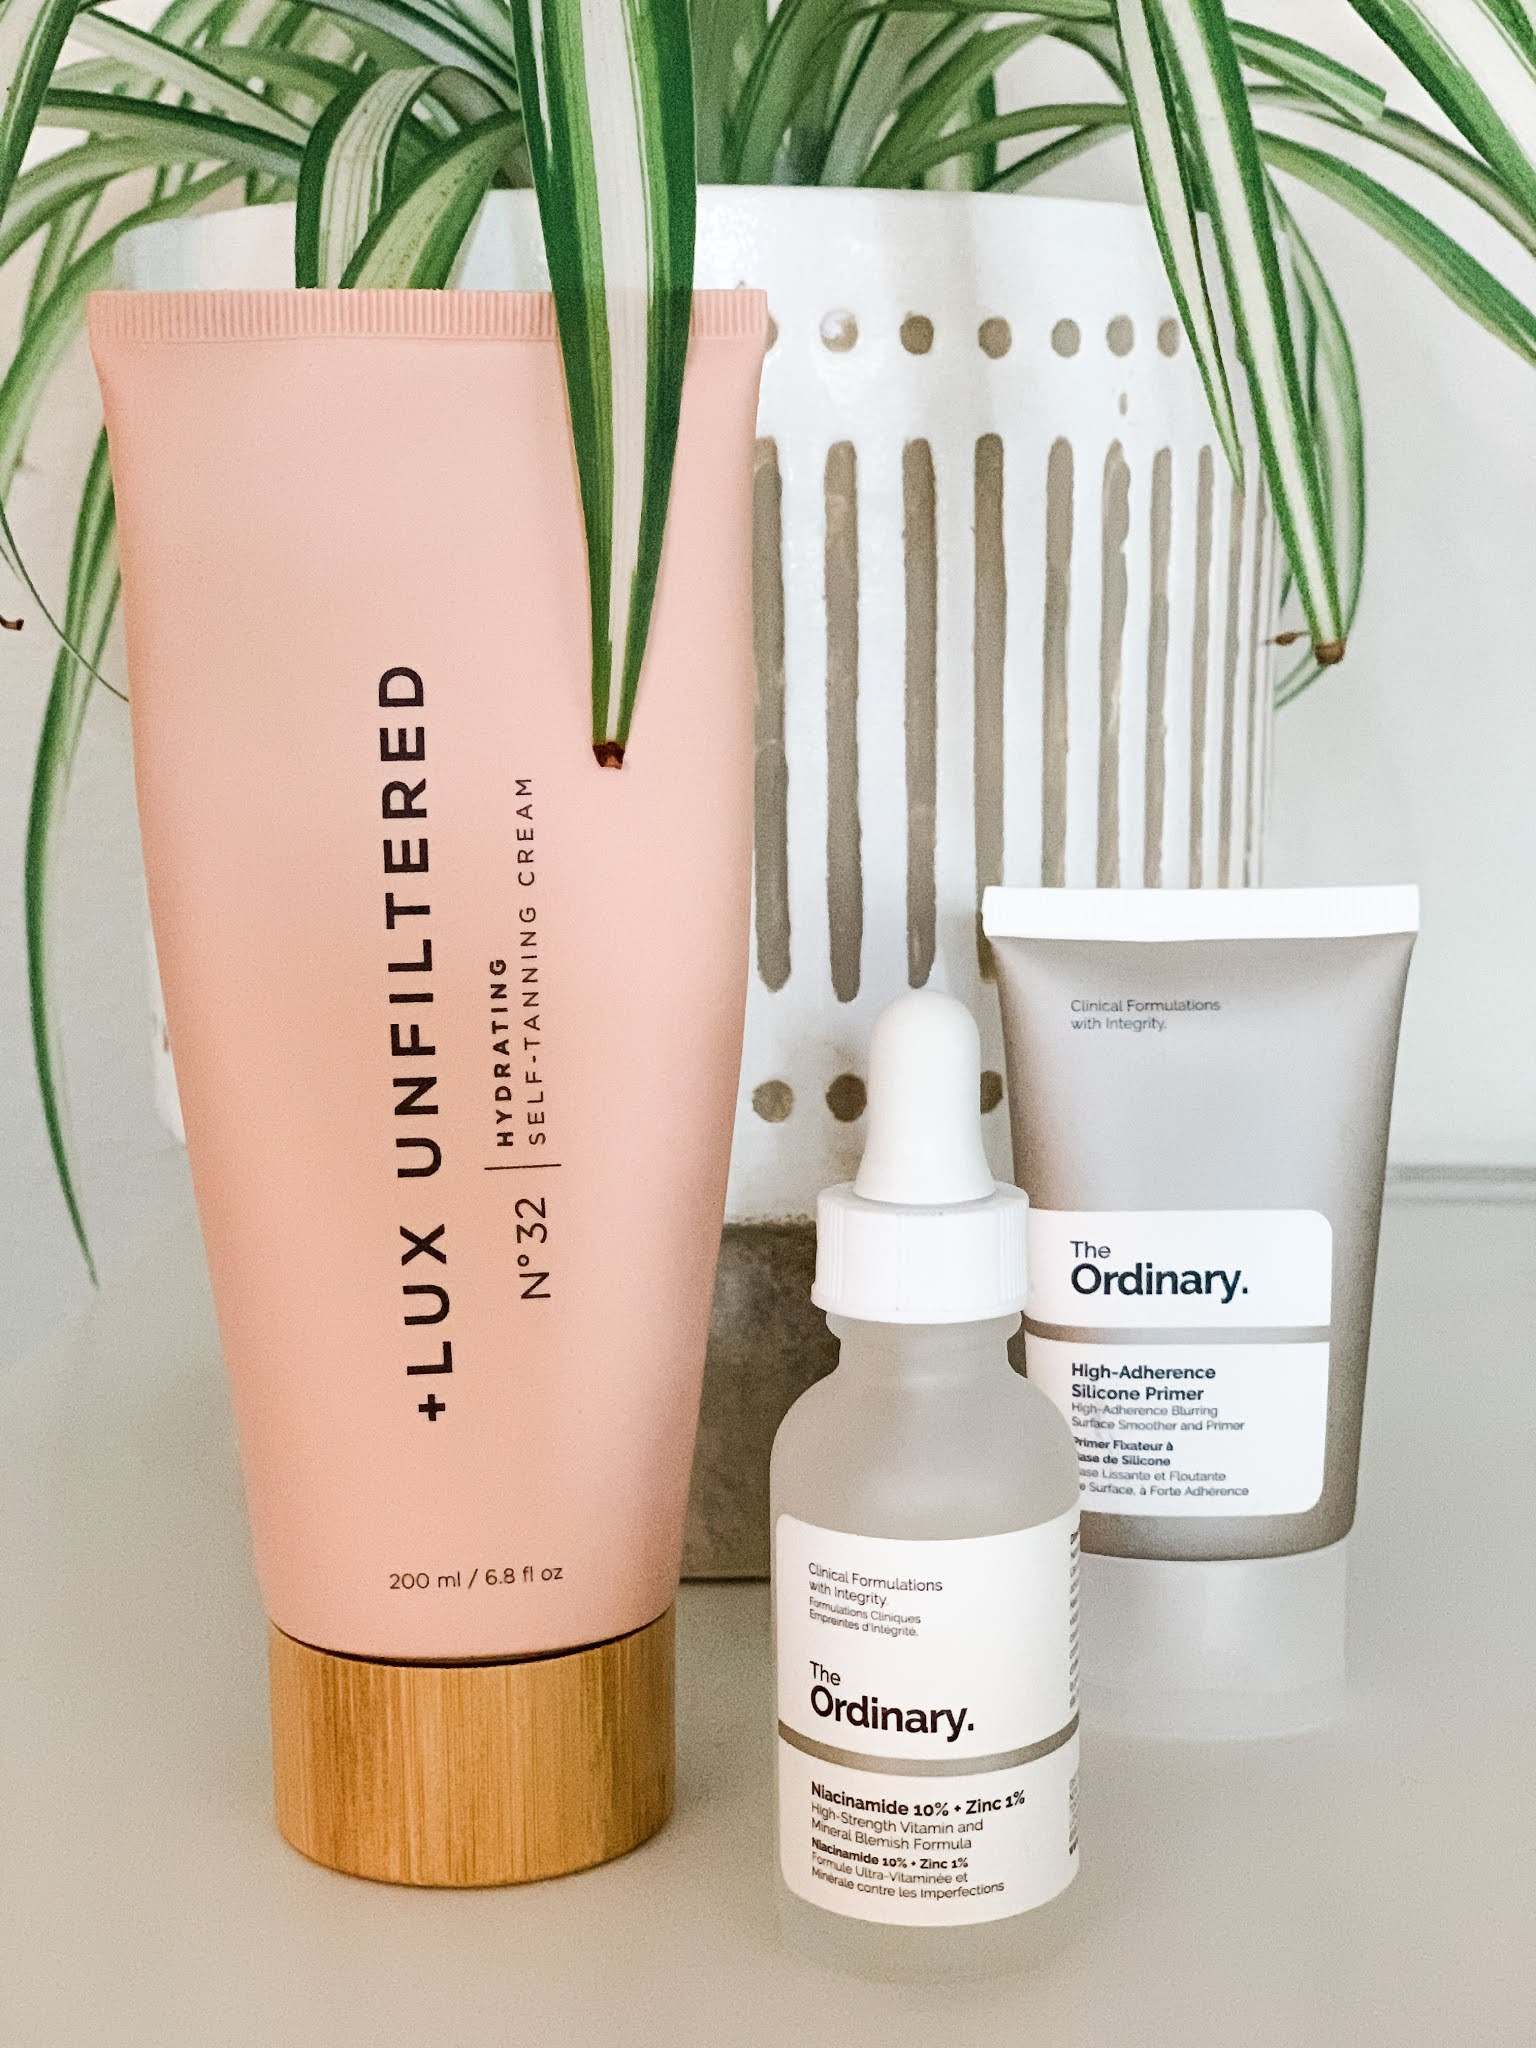 Lux Unfiltered self-tanner and The Ordinary products